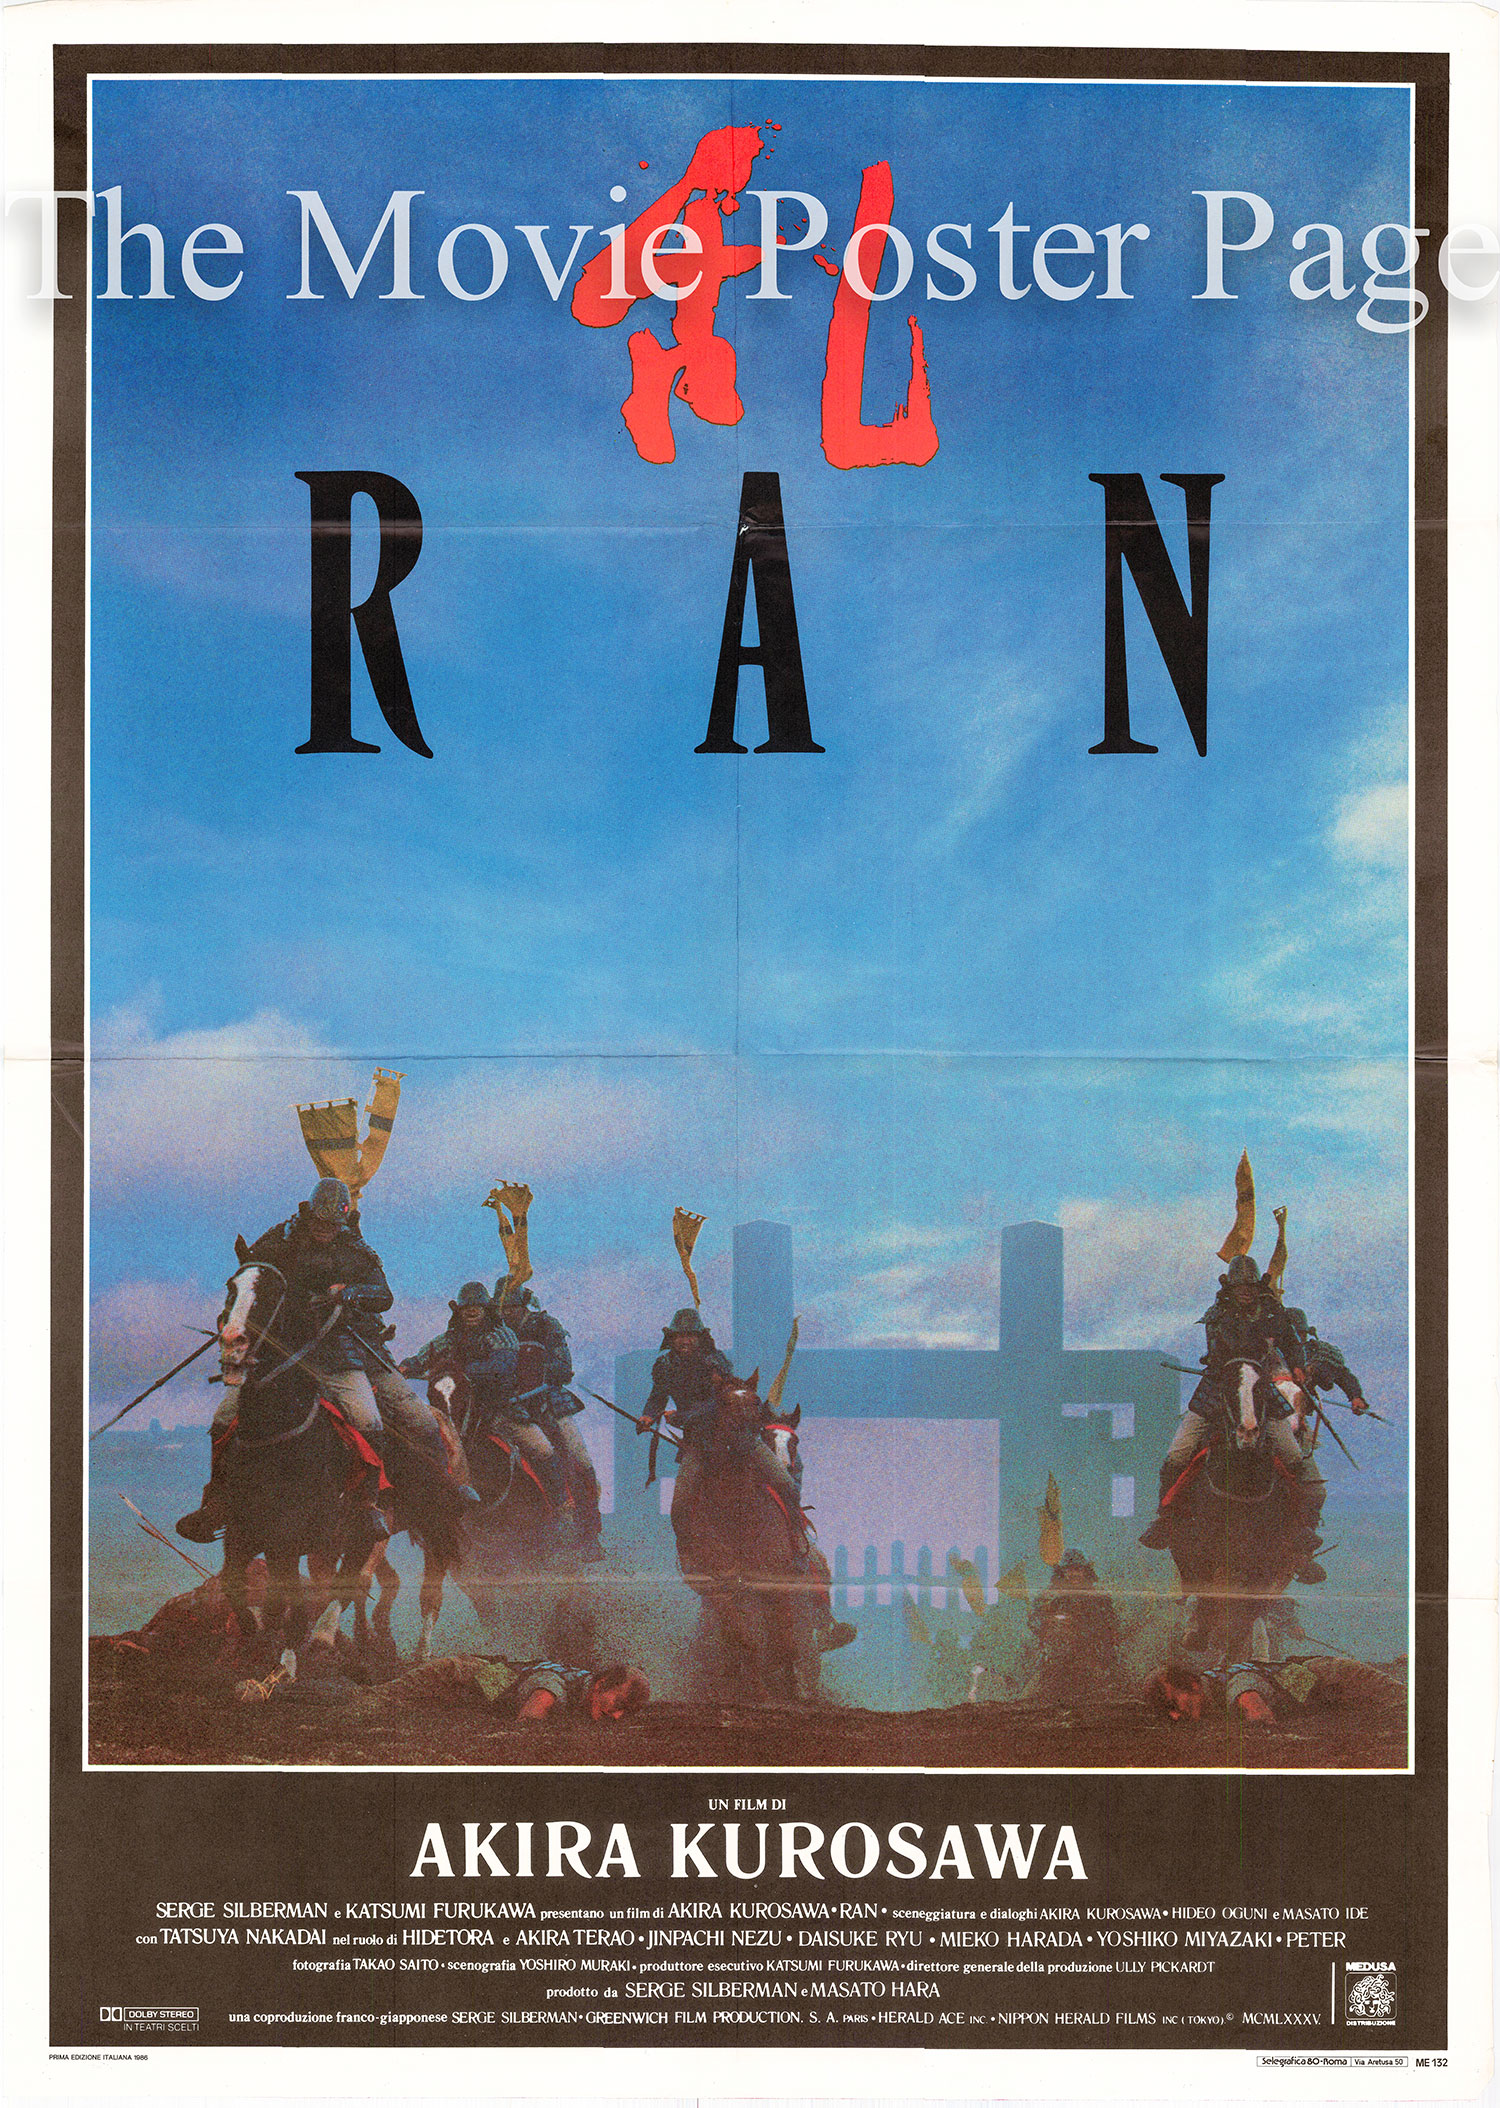 Pictured is an Italian promotional poster for the 1985 Akira Kurosawa film <i>Ran</i> starromg Tatsuya Nakadai as Lord Hidetora Ichimonji.